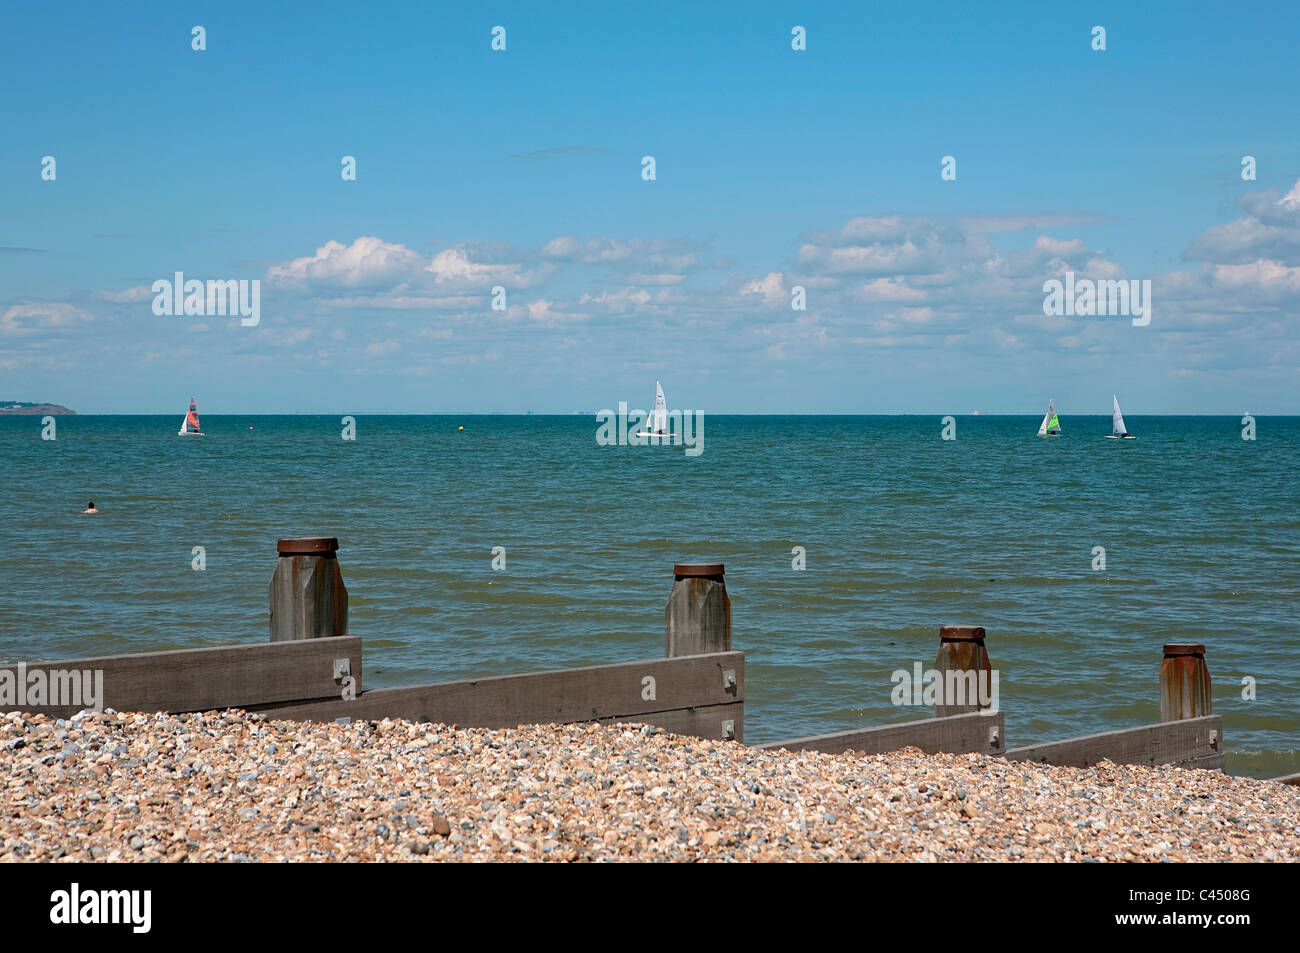 UK, England, Kent, Whitstable, view of sea with breakwaters, sailboats in background - Stock Image